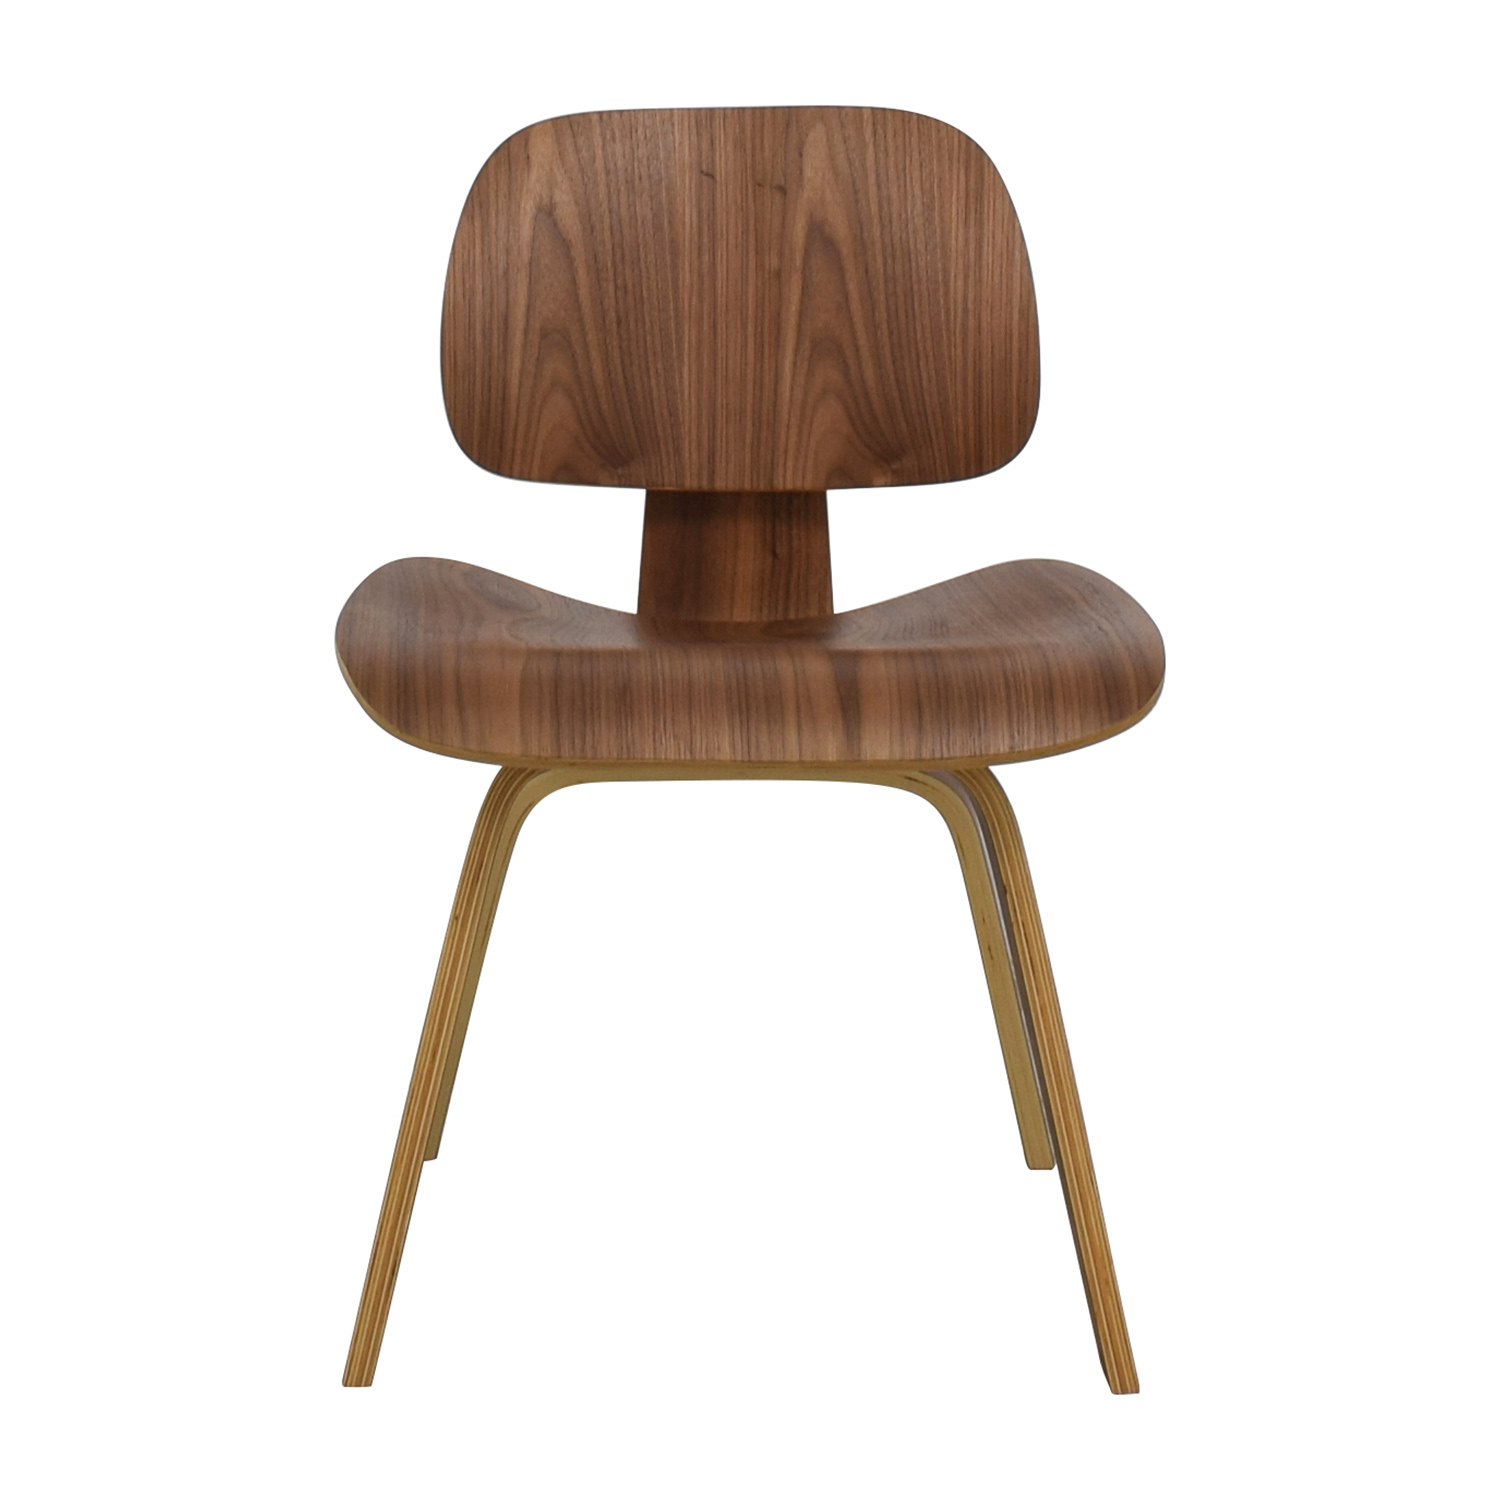 Genial Buy InMod InMod Plywood Dining Chair With Wood Legs Online ...